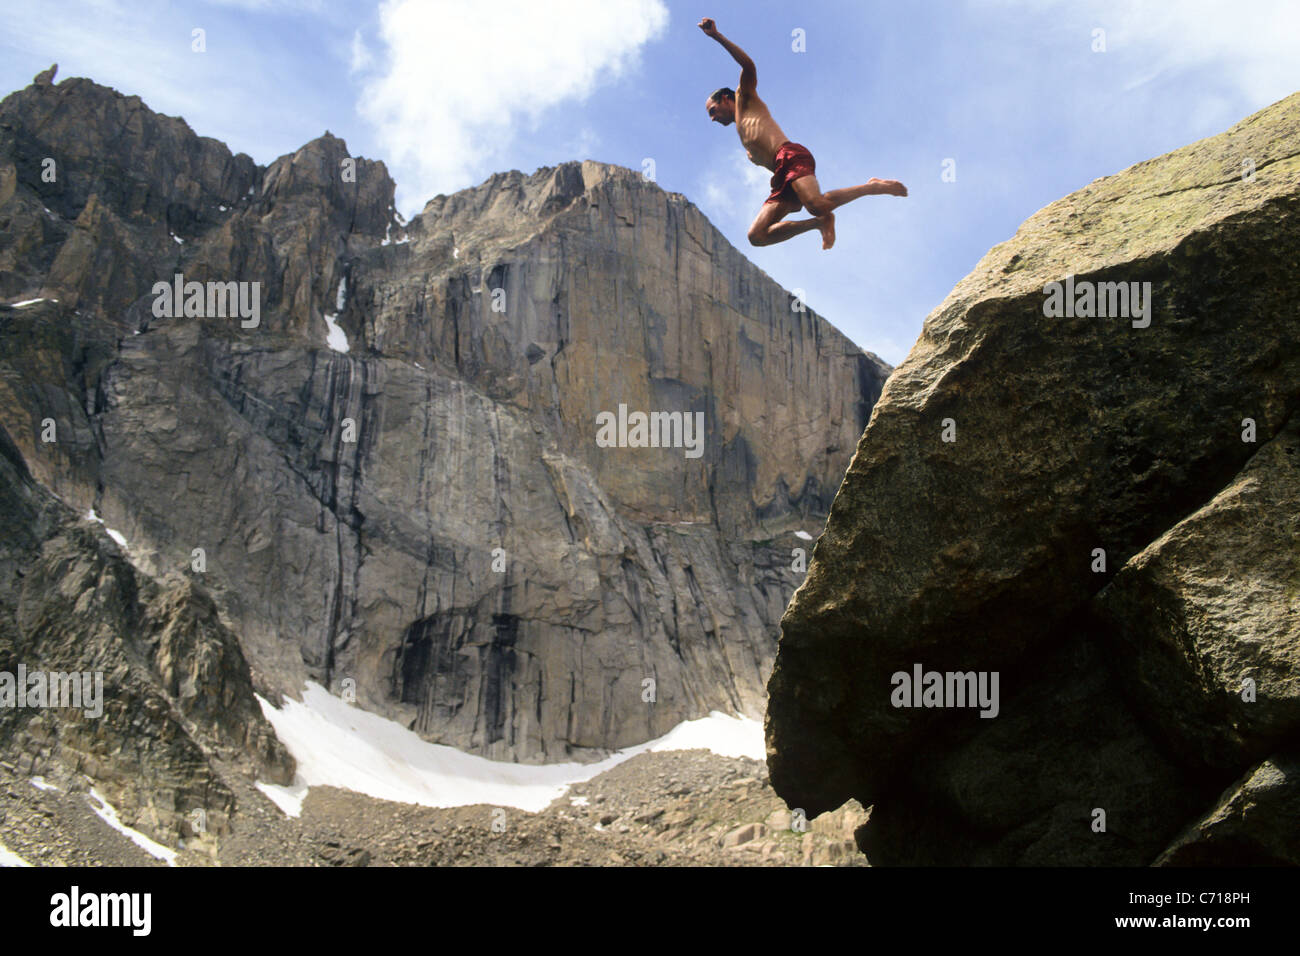 Mann springt von Felsen unten Longs Peak, Rocky Mountain Nationalpark, Estes Park, Colorado. Stockbild